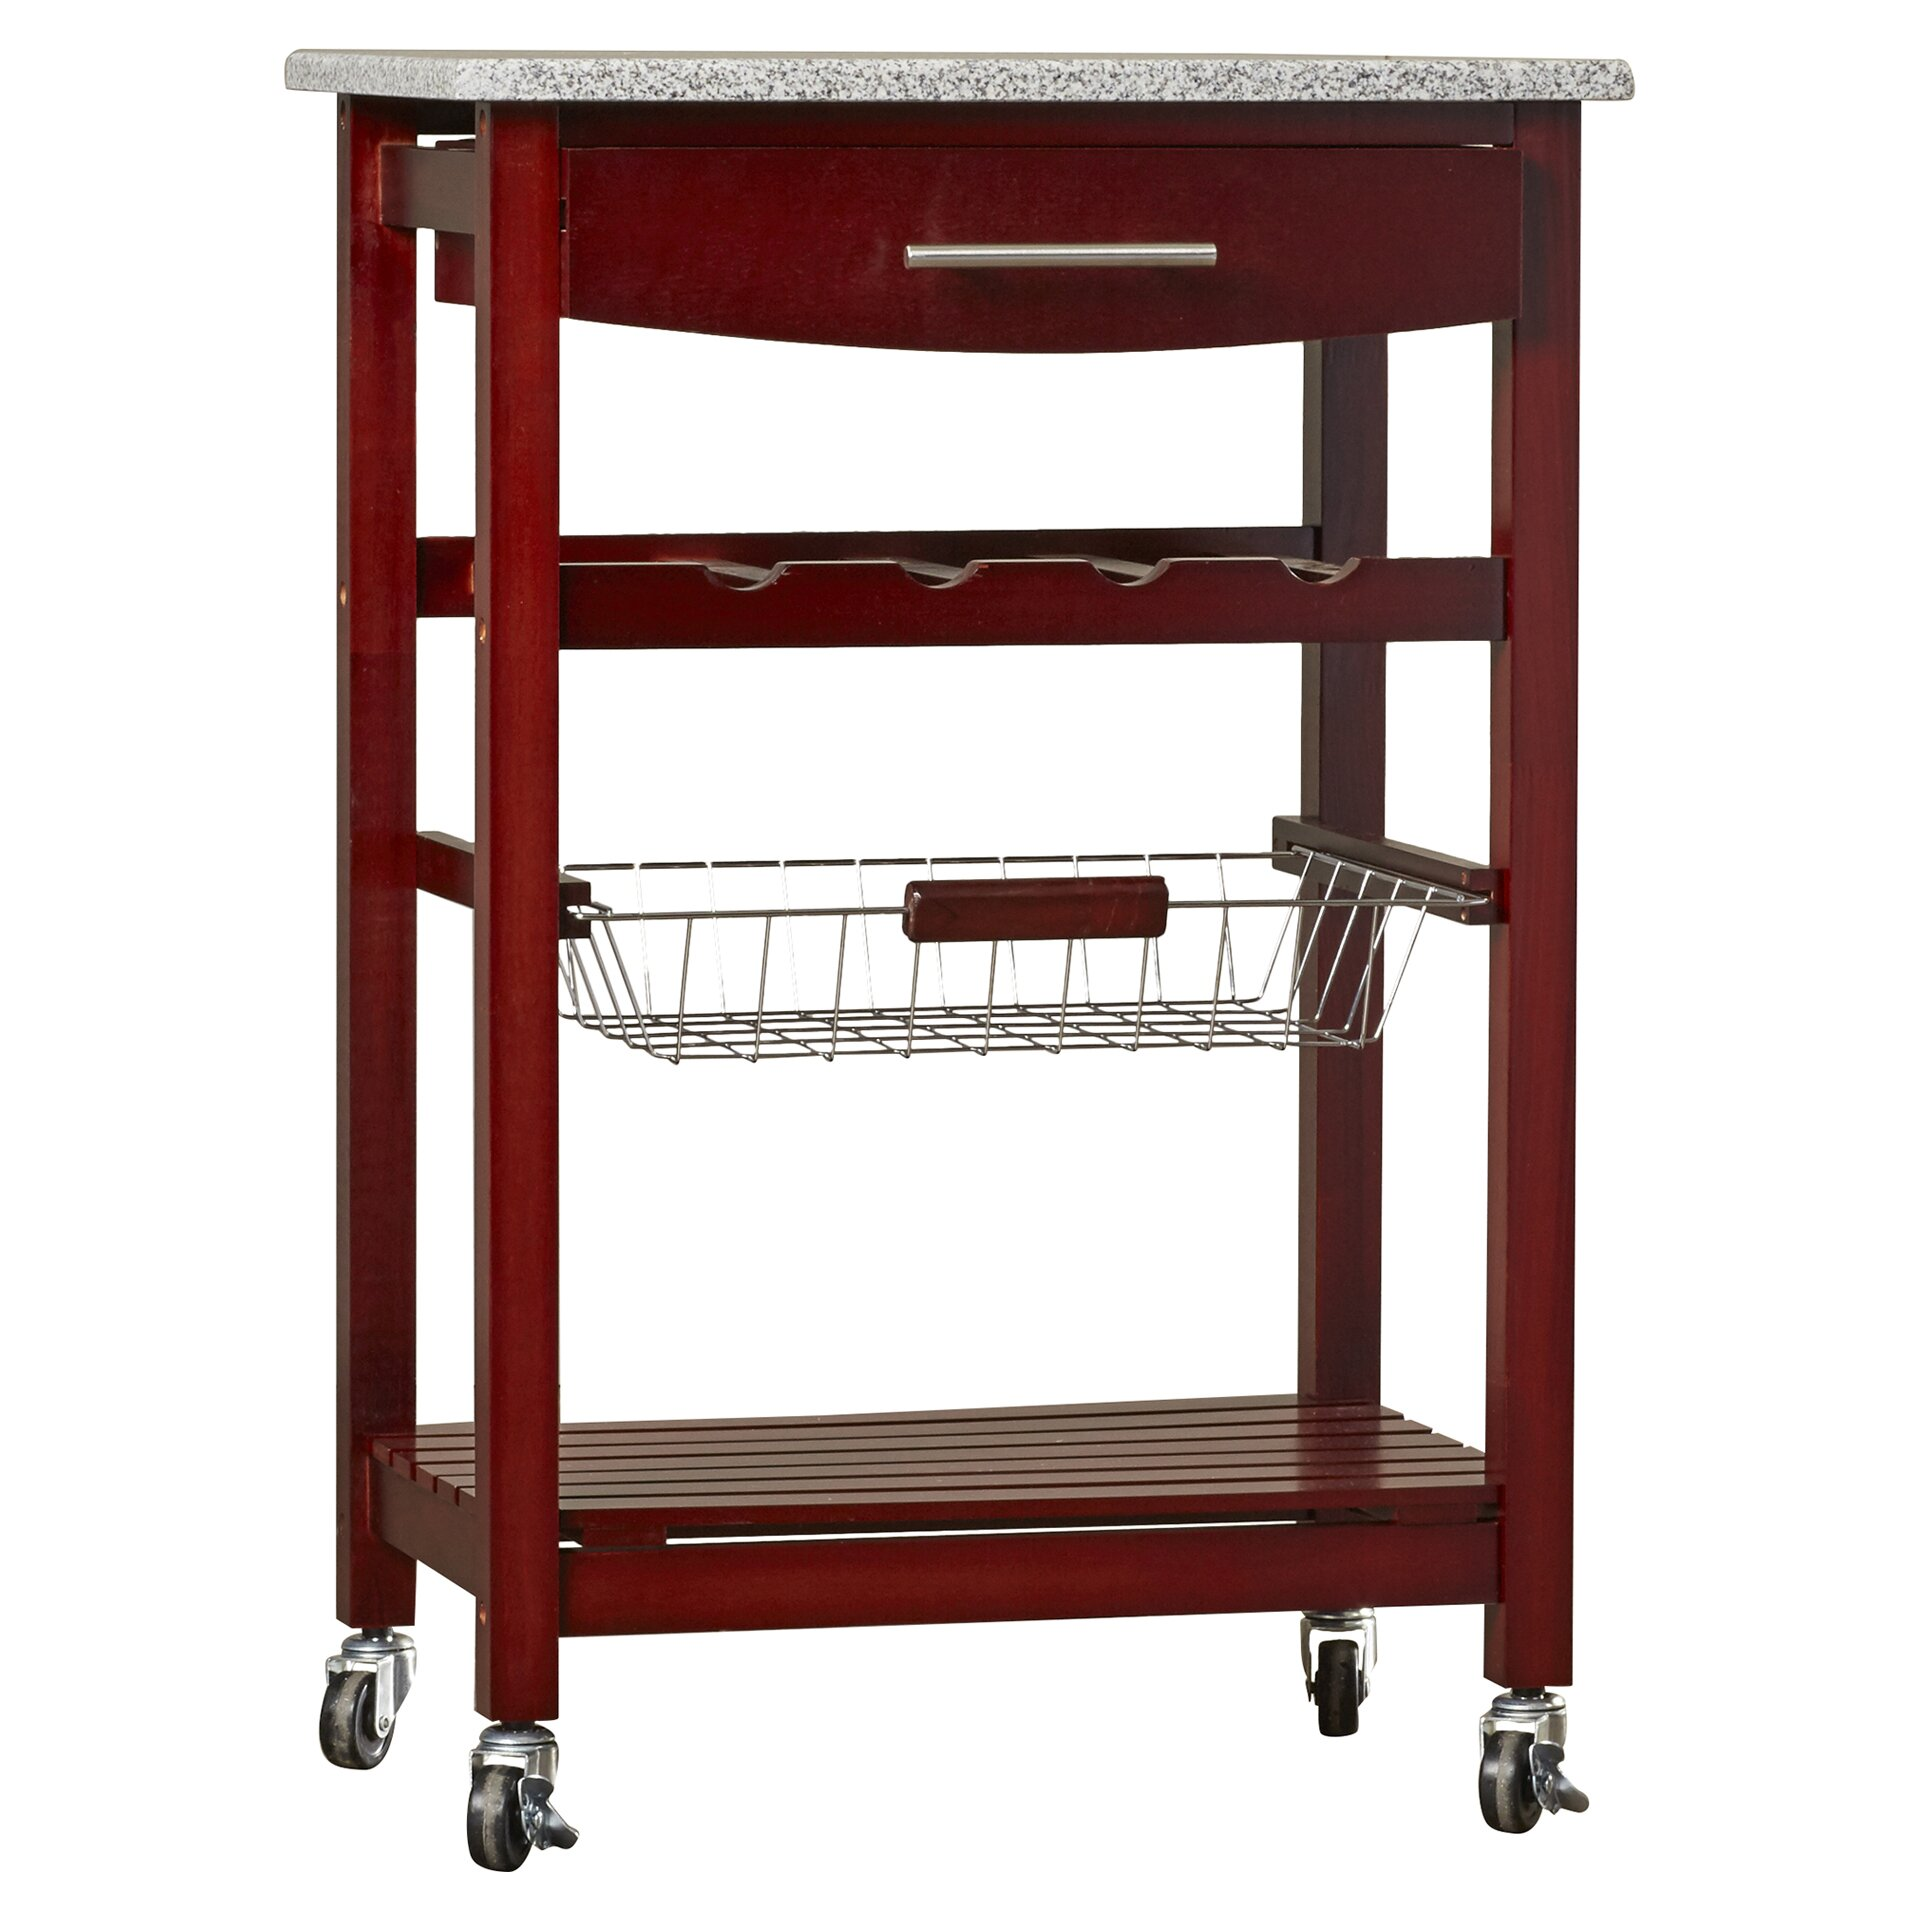 Granite Top Kitchen Cart Varick Gallery Flint Kitchen Cart With Granite Top Reviews Wayfair